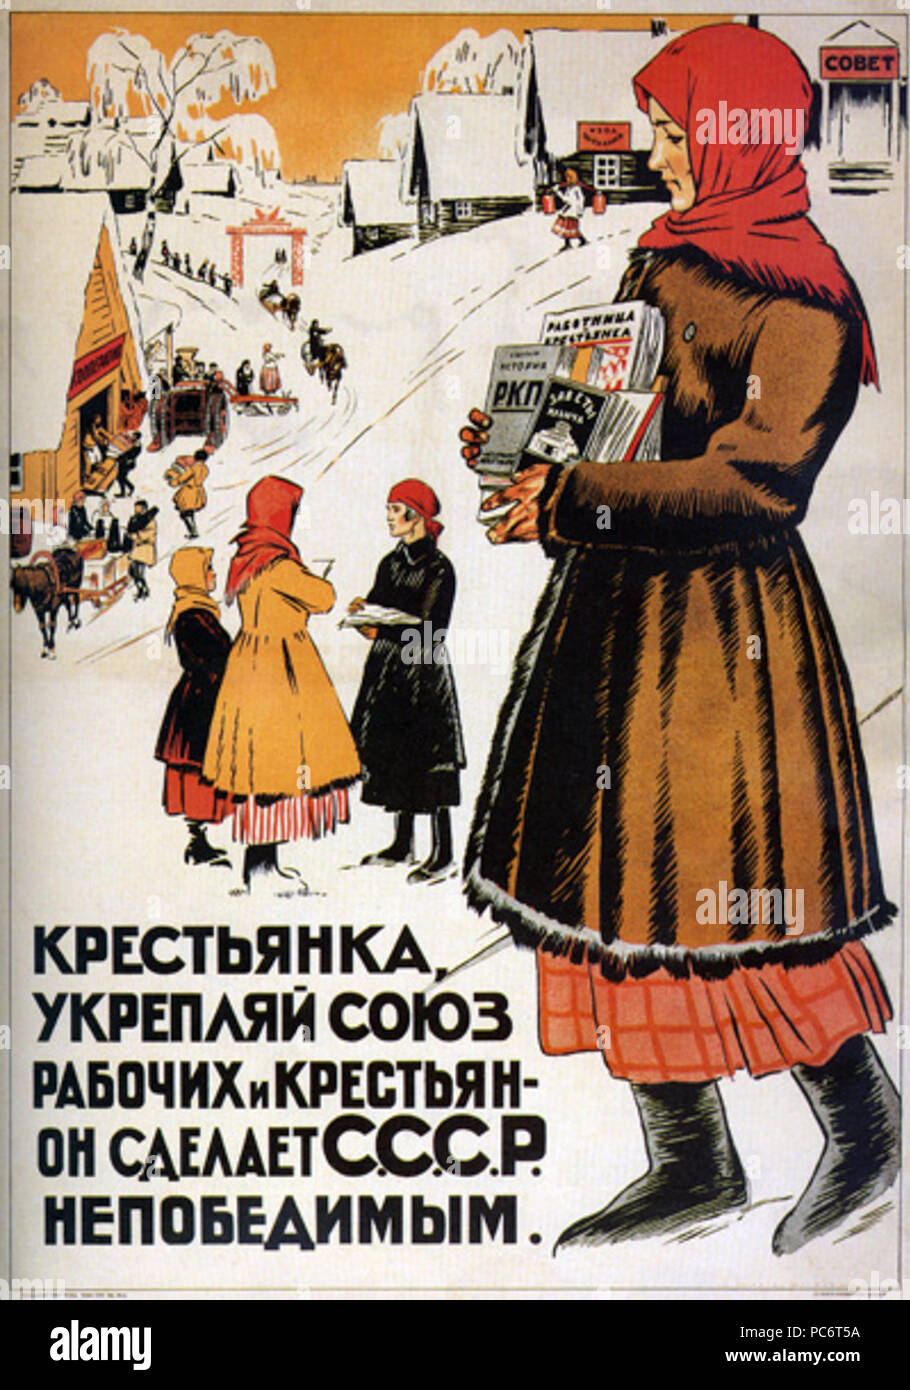 """1 """"Peasant woman, consolidate the unity of workers and peasants."""" - Stock Image"""